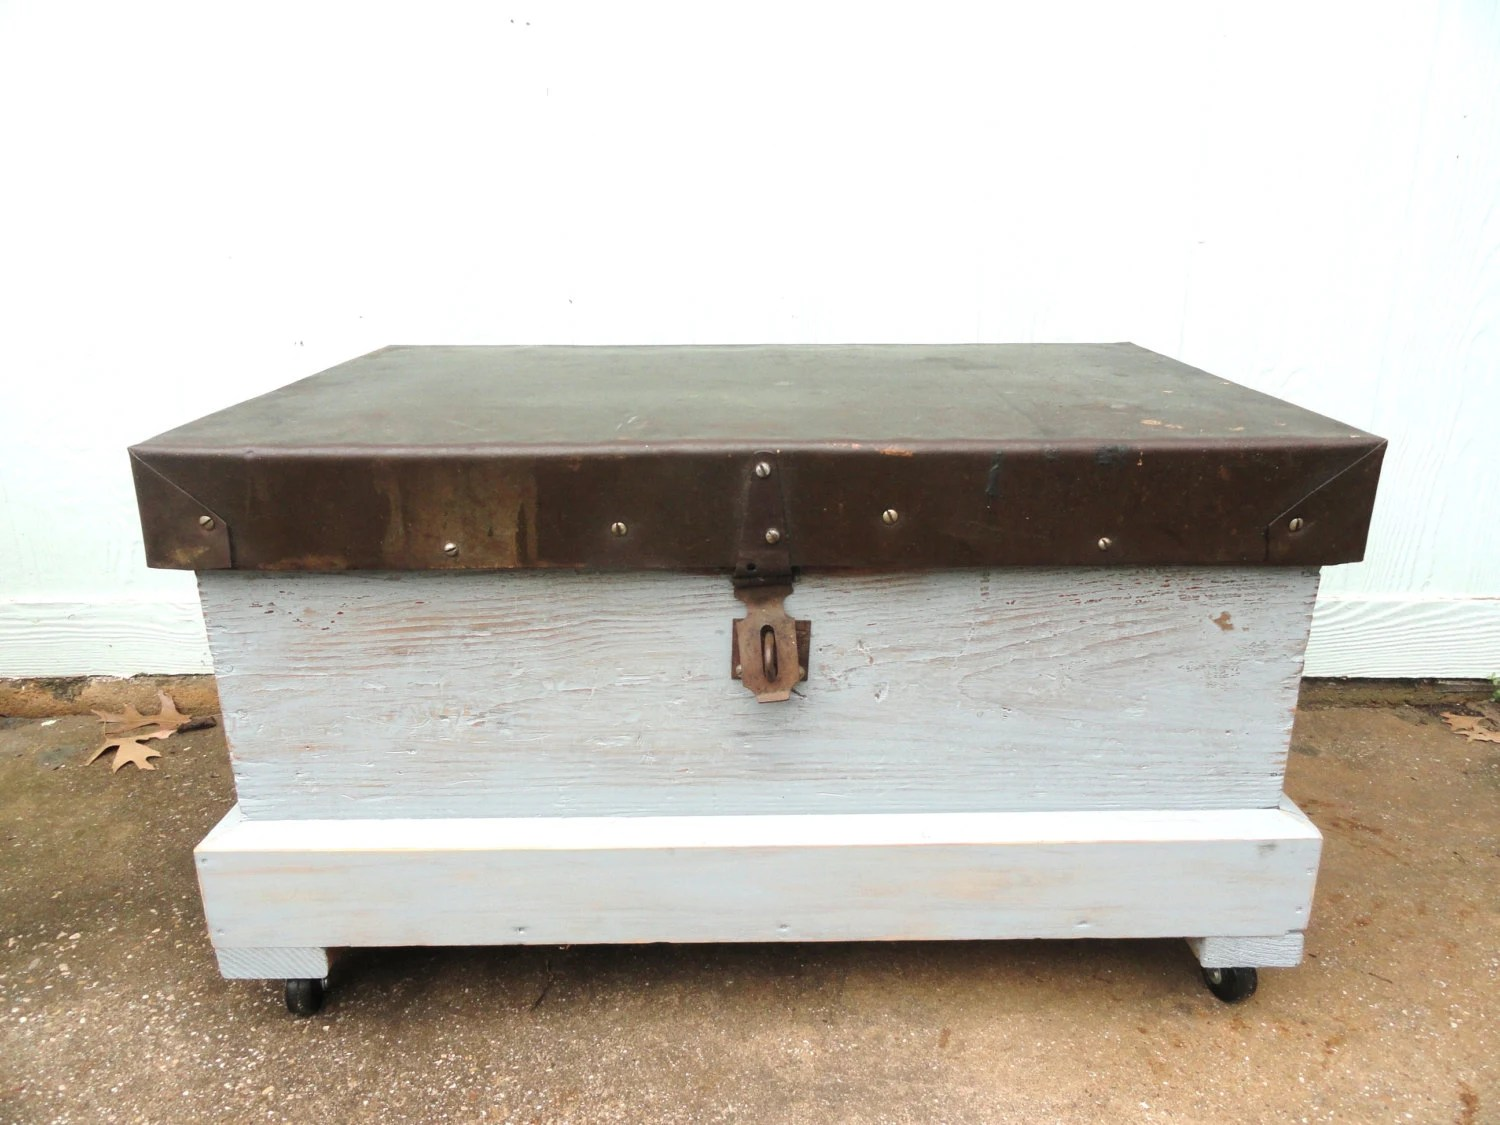 Repurposed Trunk Box Coffee Table Storage Organizer Rolling Wheels Worn Blue Paint Hinged Lid